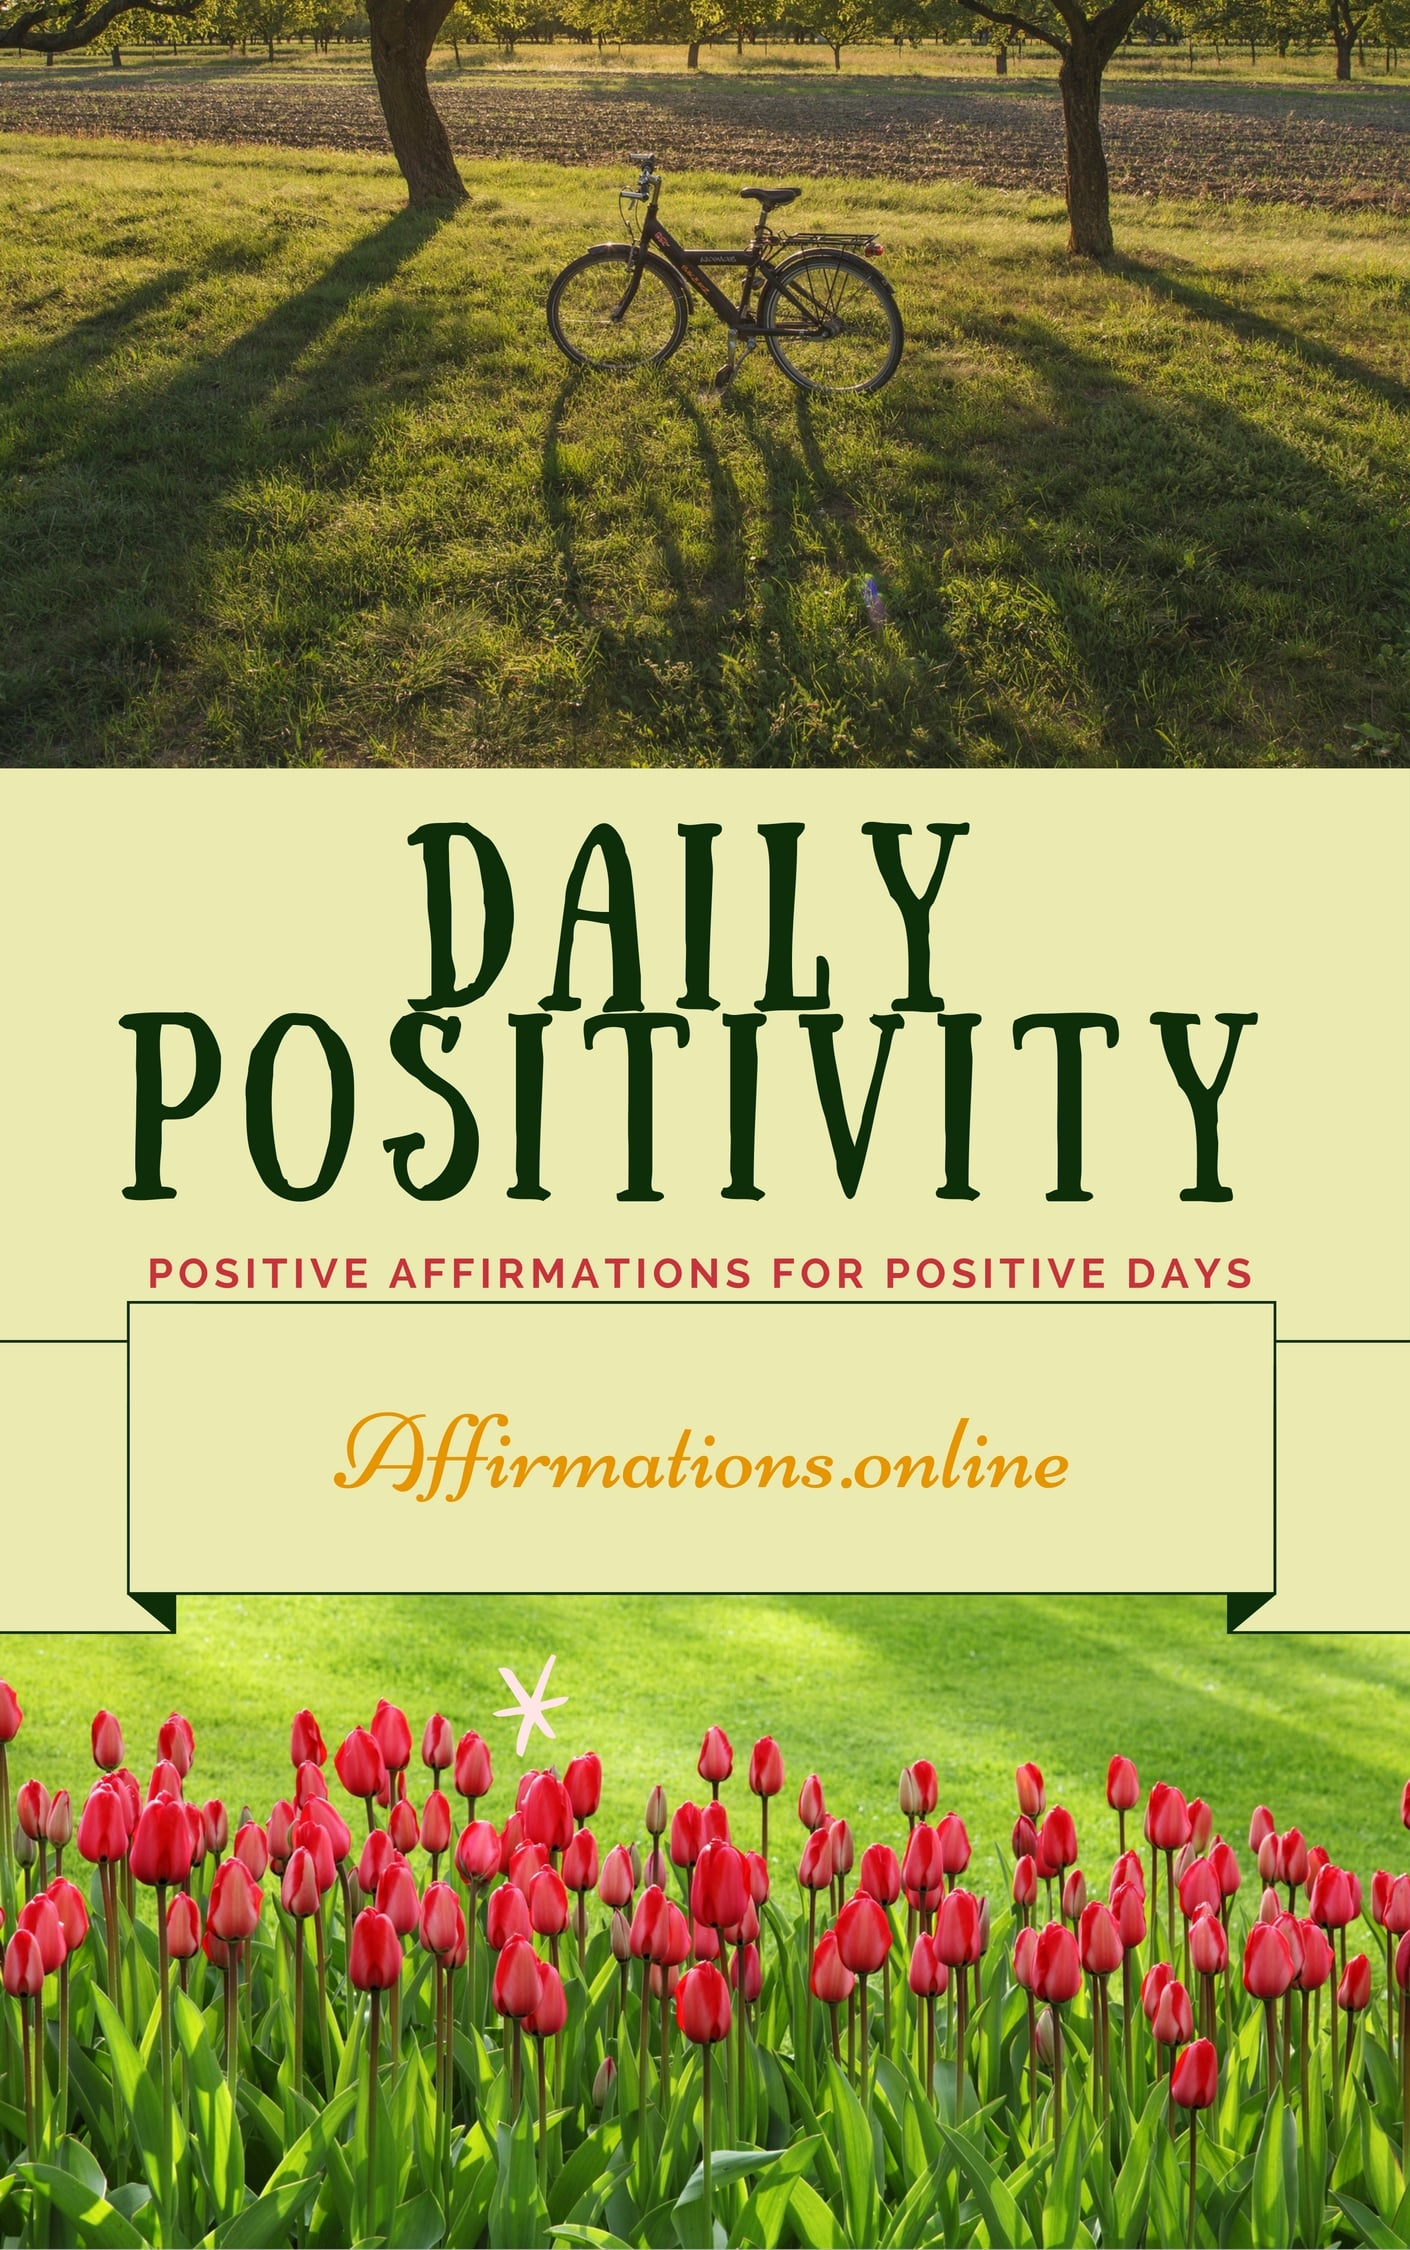 Daily Positivity - eBook cover - free affirmations eBook from affirmations.online